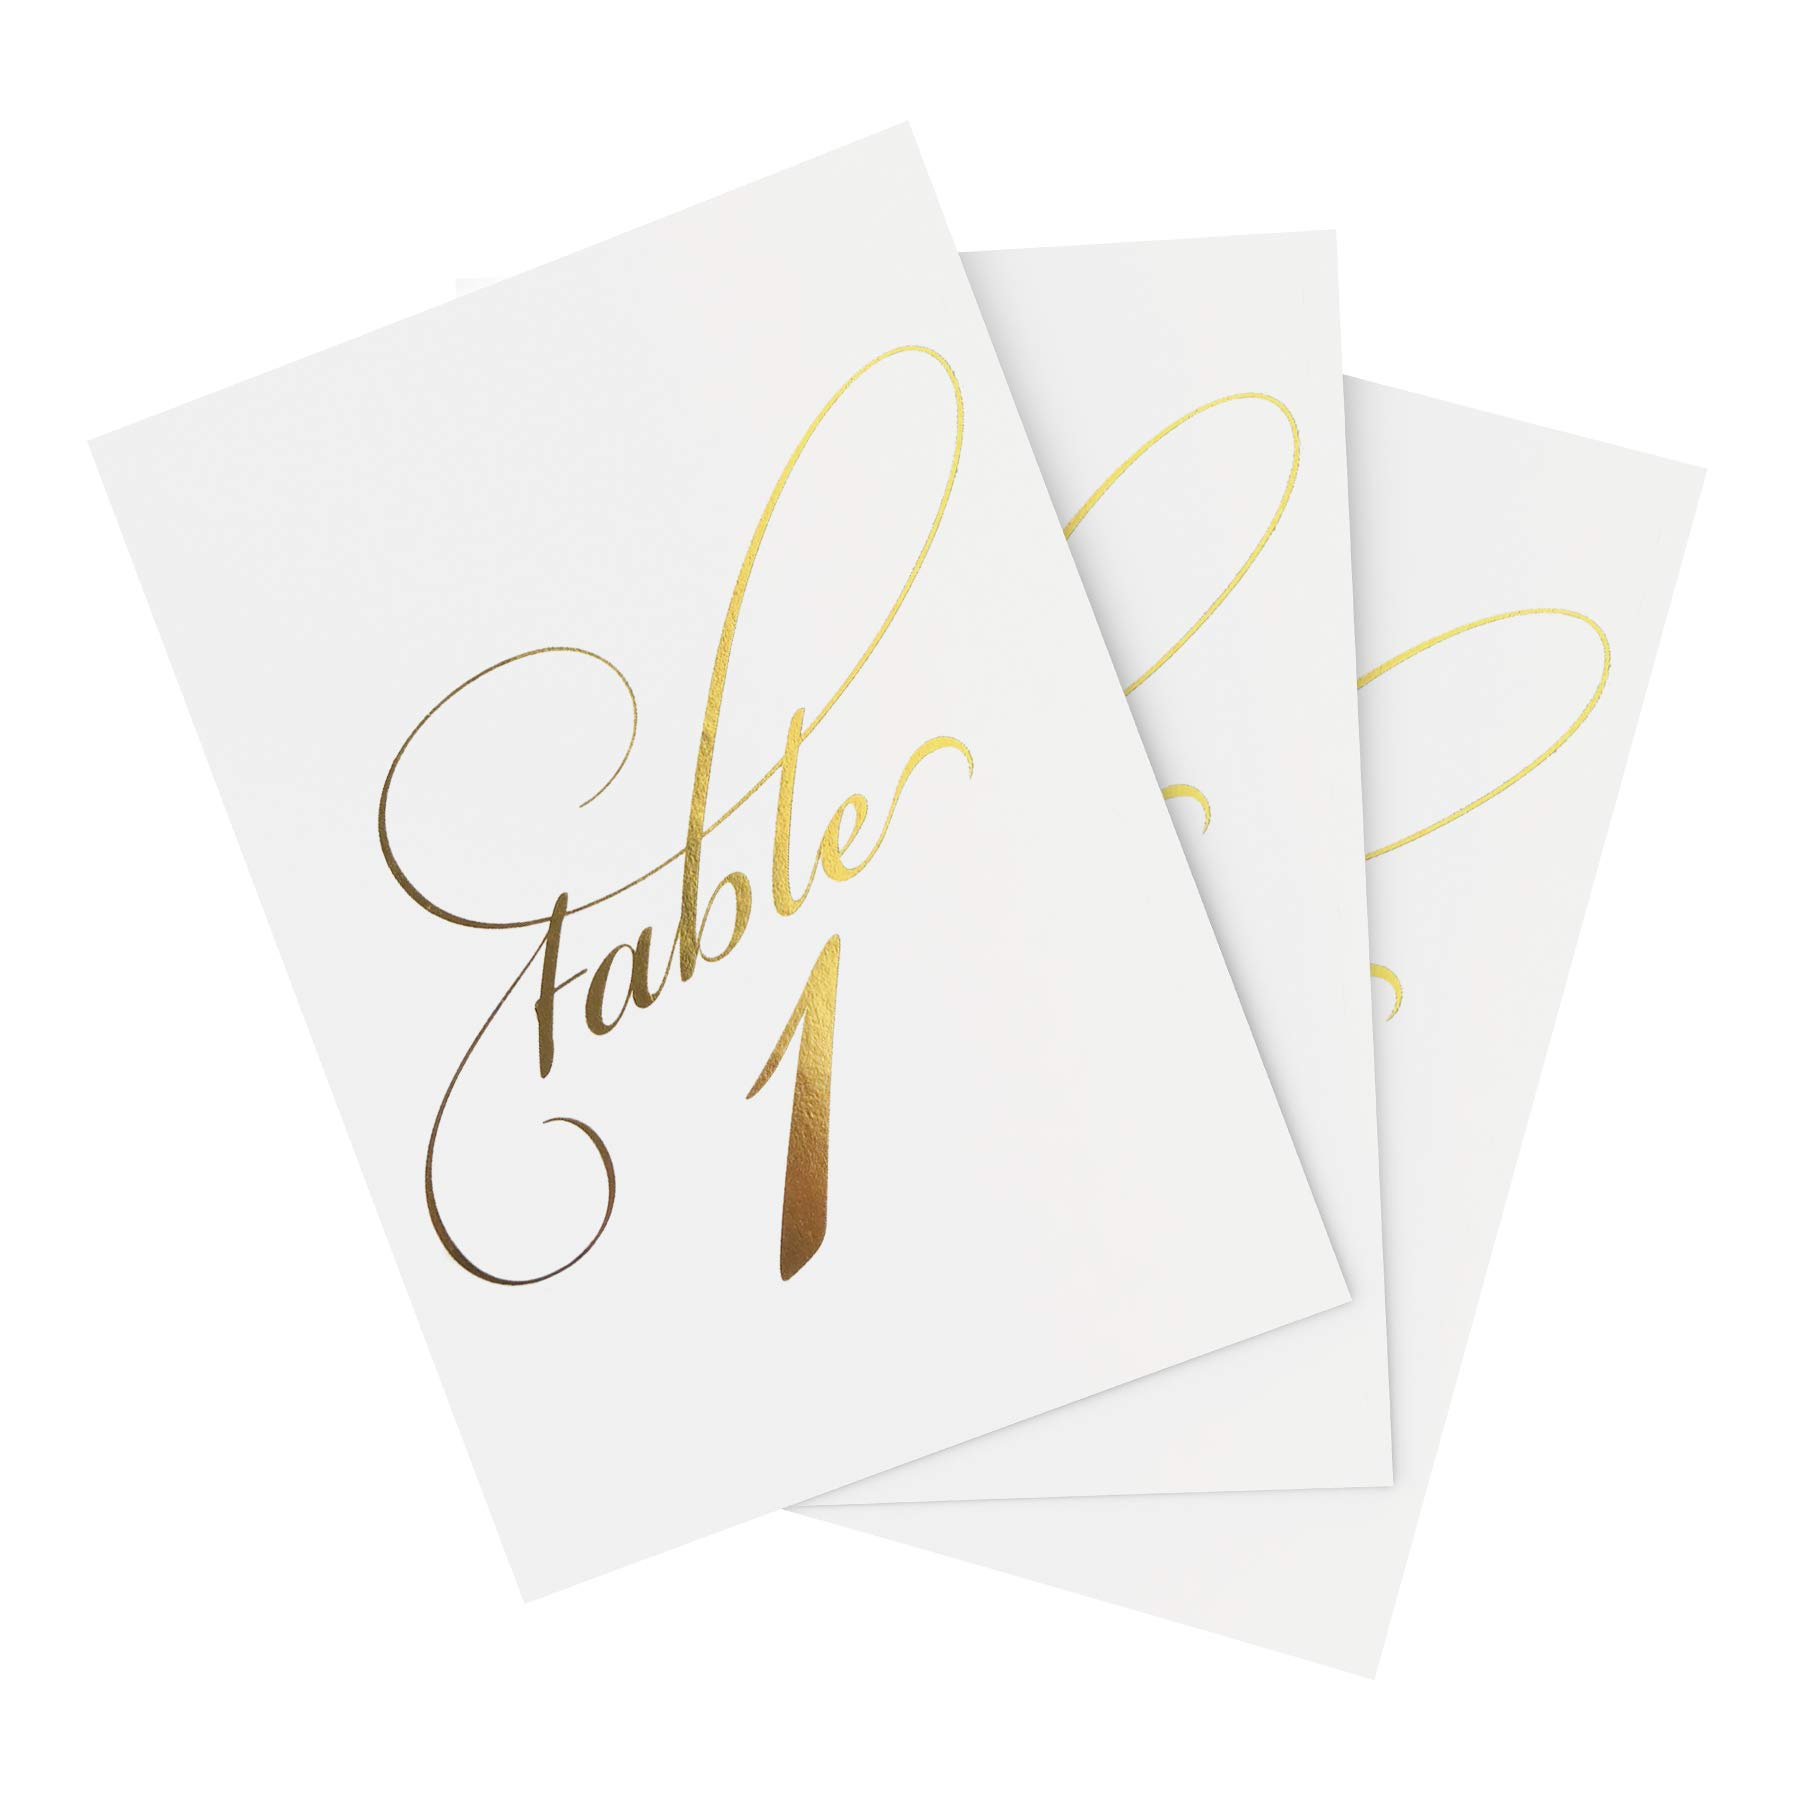 Bliss Paper Boutique Gold Wedding Table Numbers (Assorted Color Options Available), Double Sided 4x6 Calligraphy Design, Numbers 1-40 & Head Table Card Included